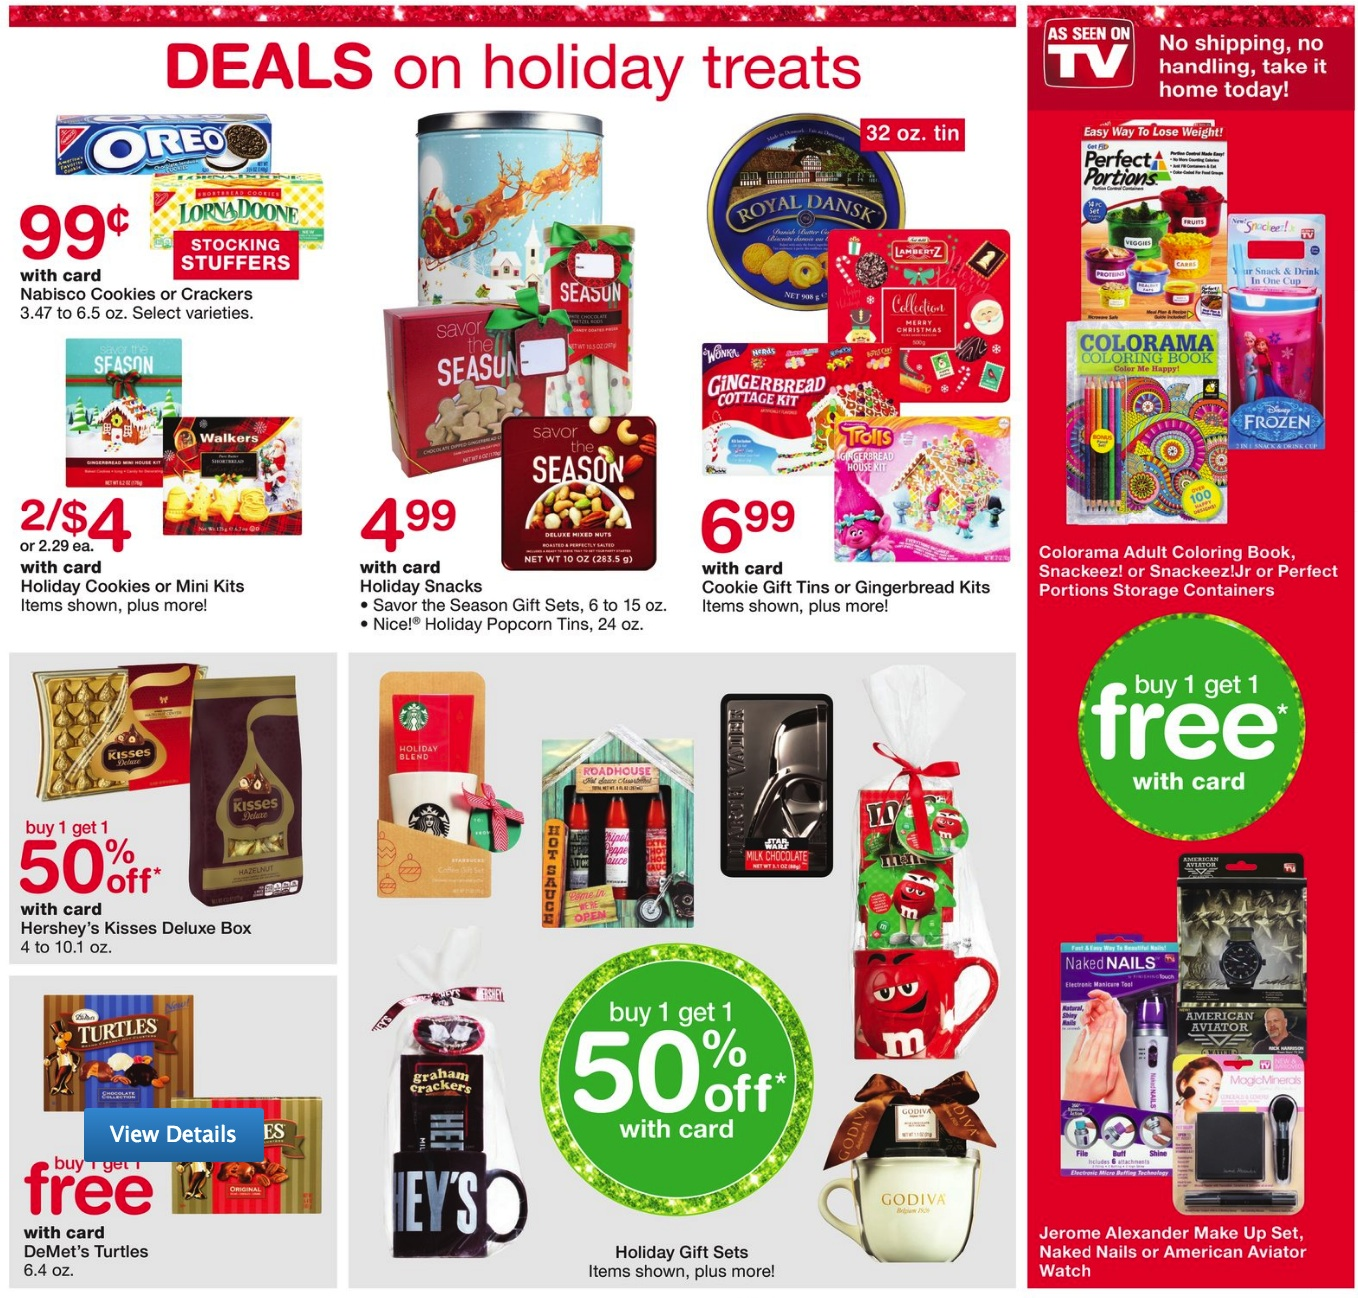 6f36c5d94 A free $10 Walgreens gift card was thrown in with the purchase of $30  iTunes Multipack or $50 iTunes gift card. There was also an online  exclusive with 35% ...